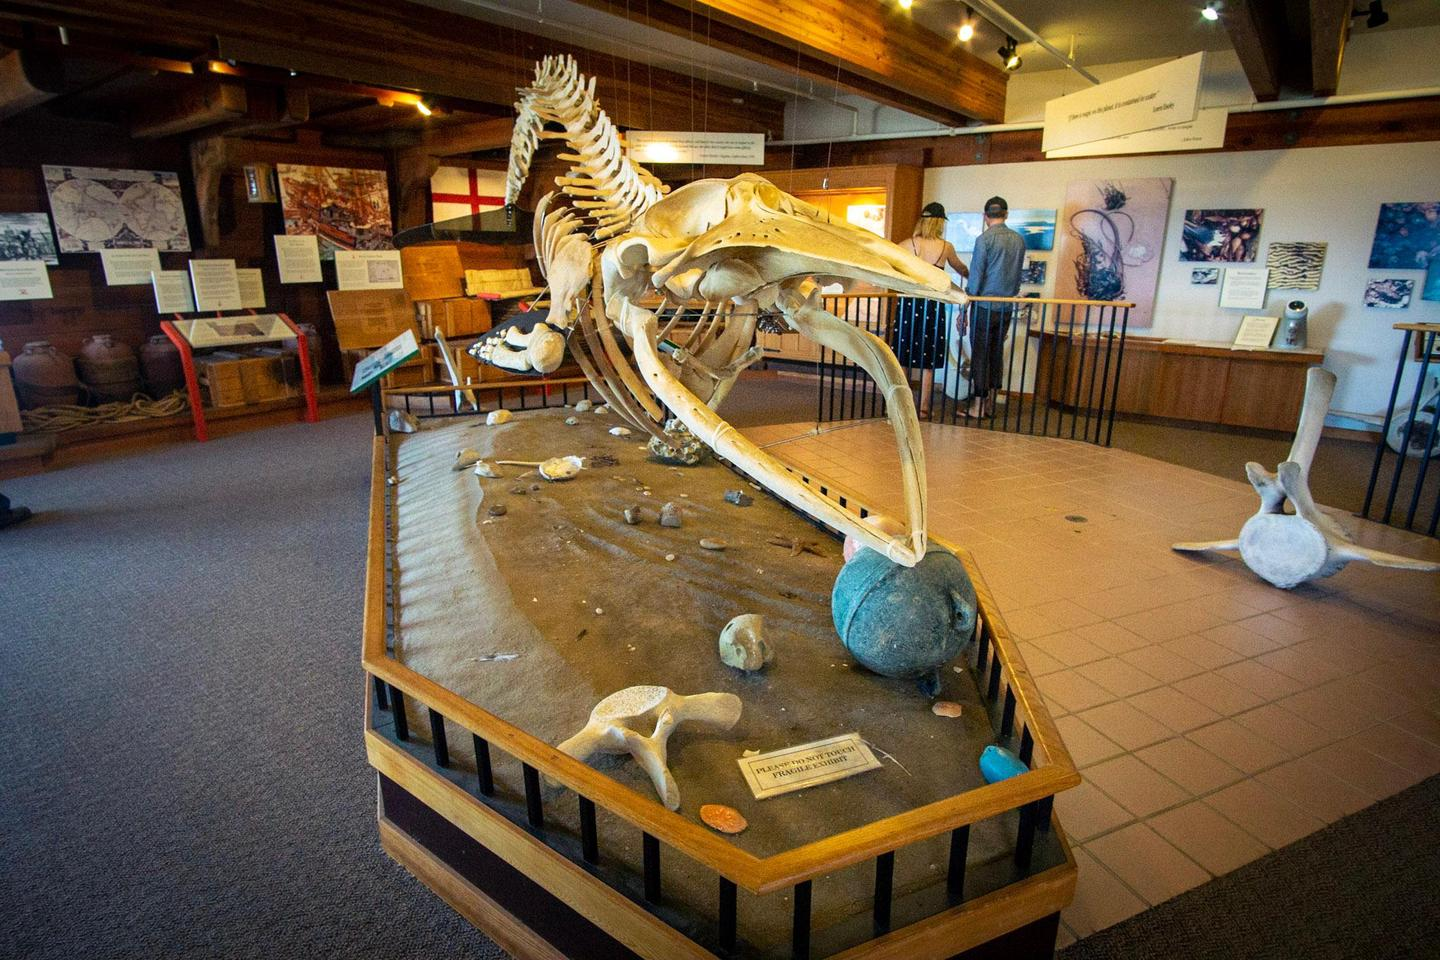 Kenneth C. Patrick Visitor Center: Minke Whale SkeletonThe skeleton of a two-year old minke whale that was found dead on Kehoe Beach is now displayed in the Kenneth C. Patrick Visitor Center.